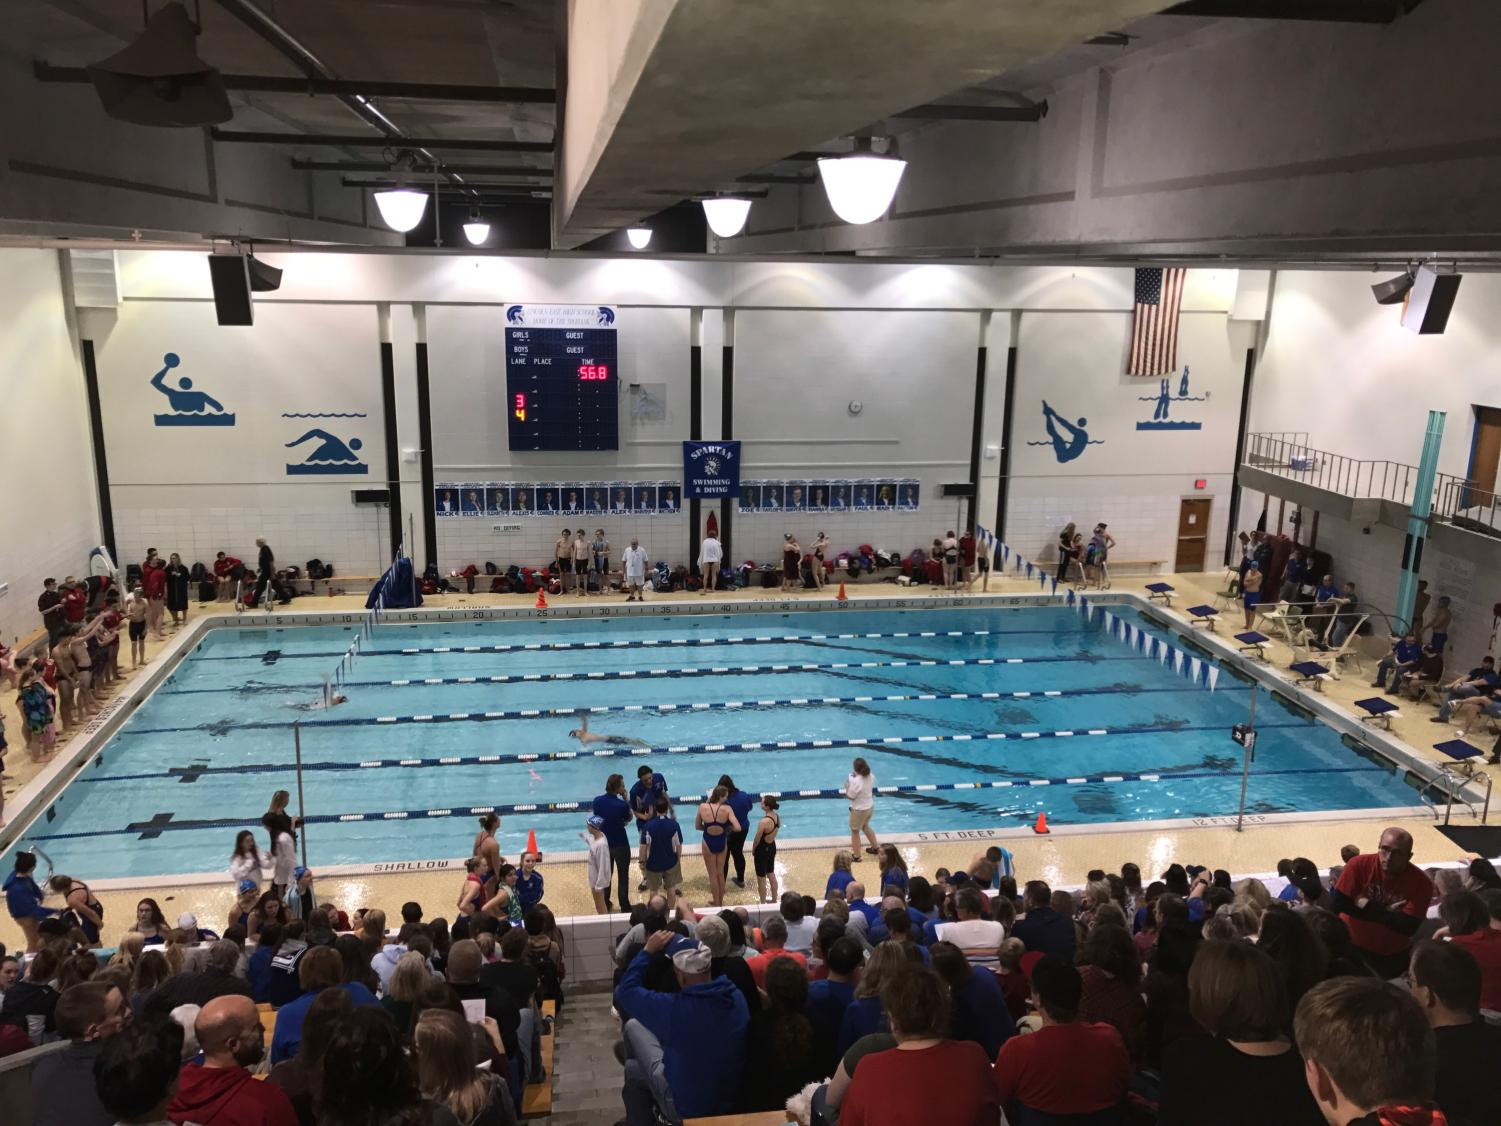 The stands were, well, packed at Pack the Pool on Tuesday the 15th.